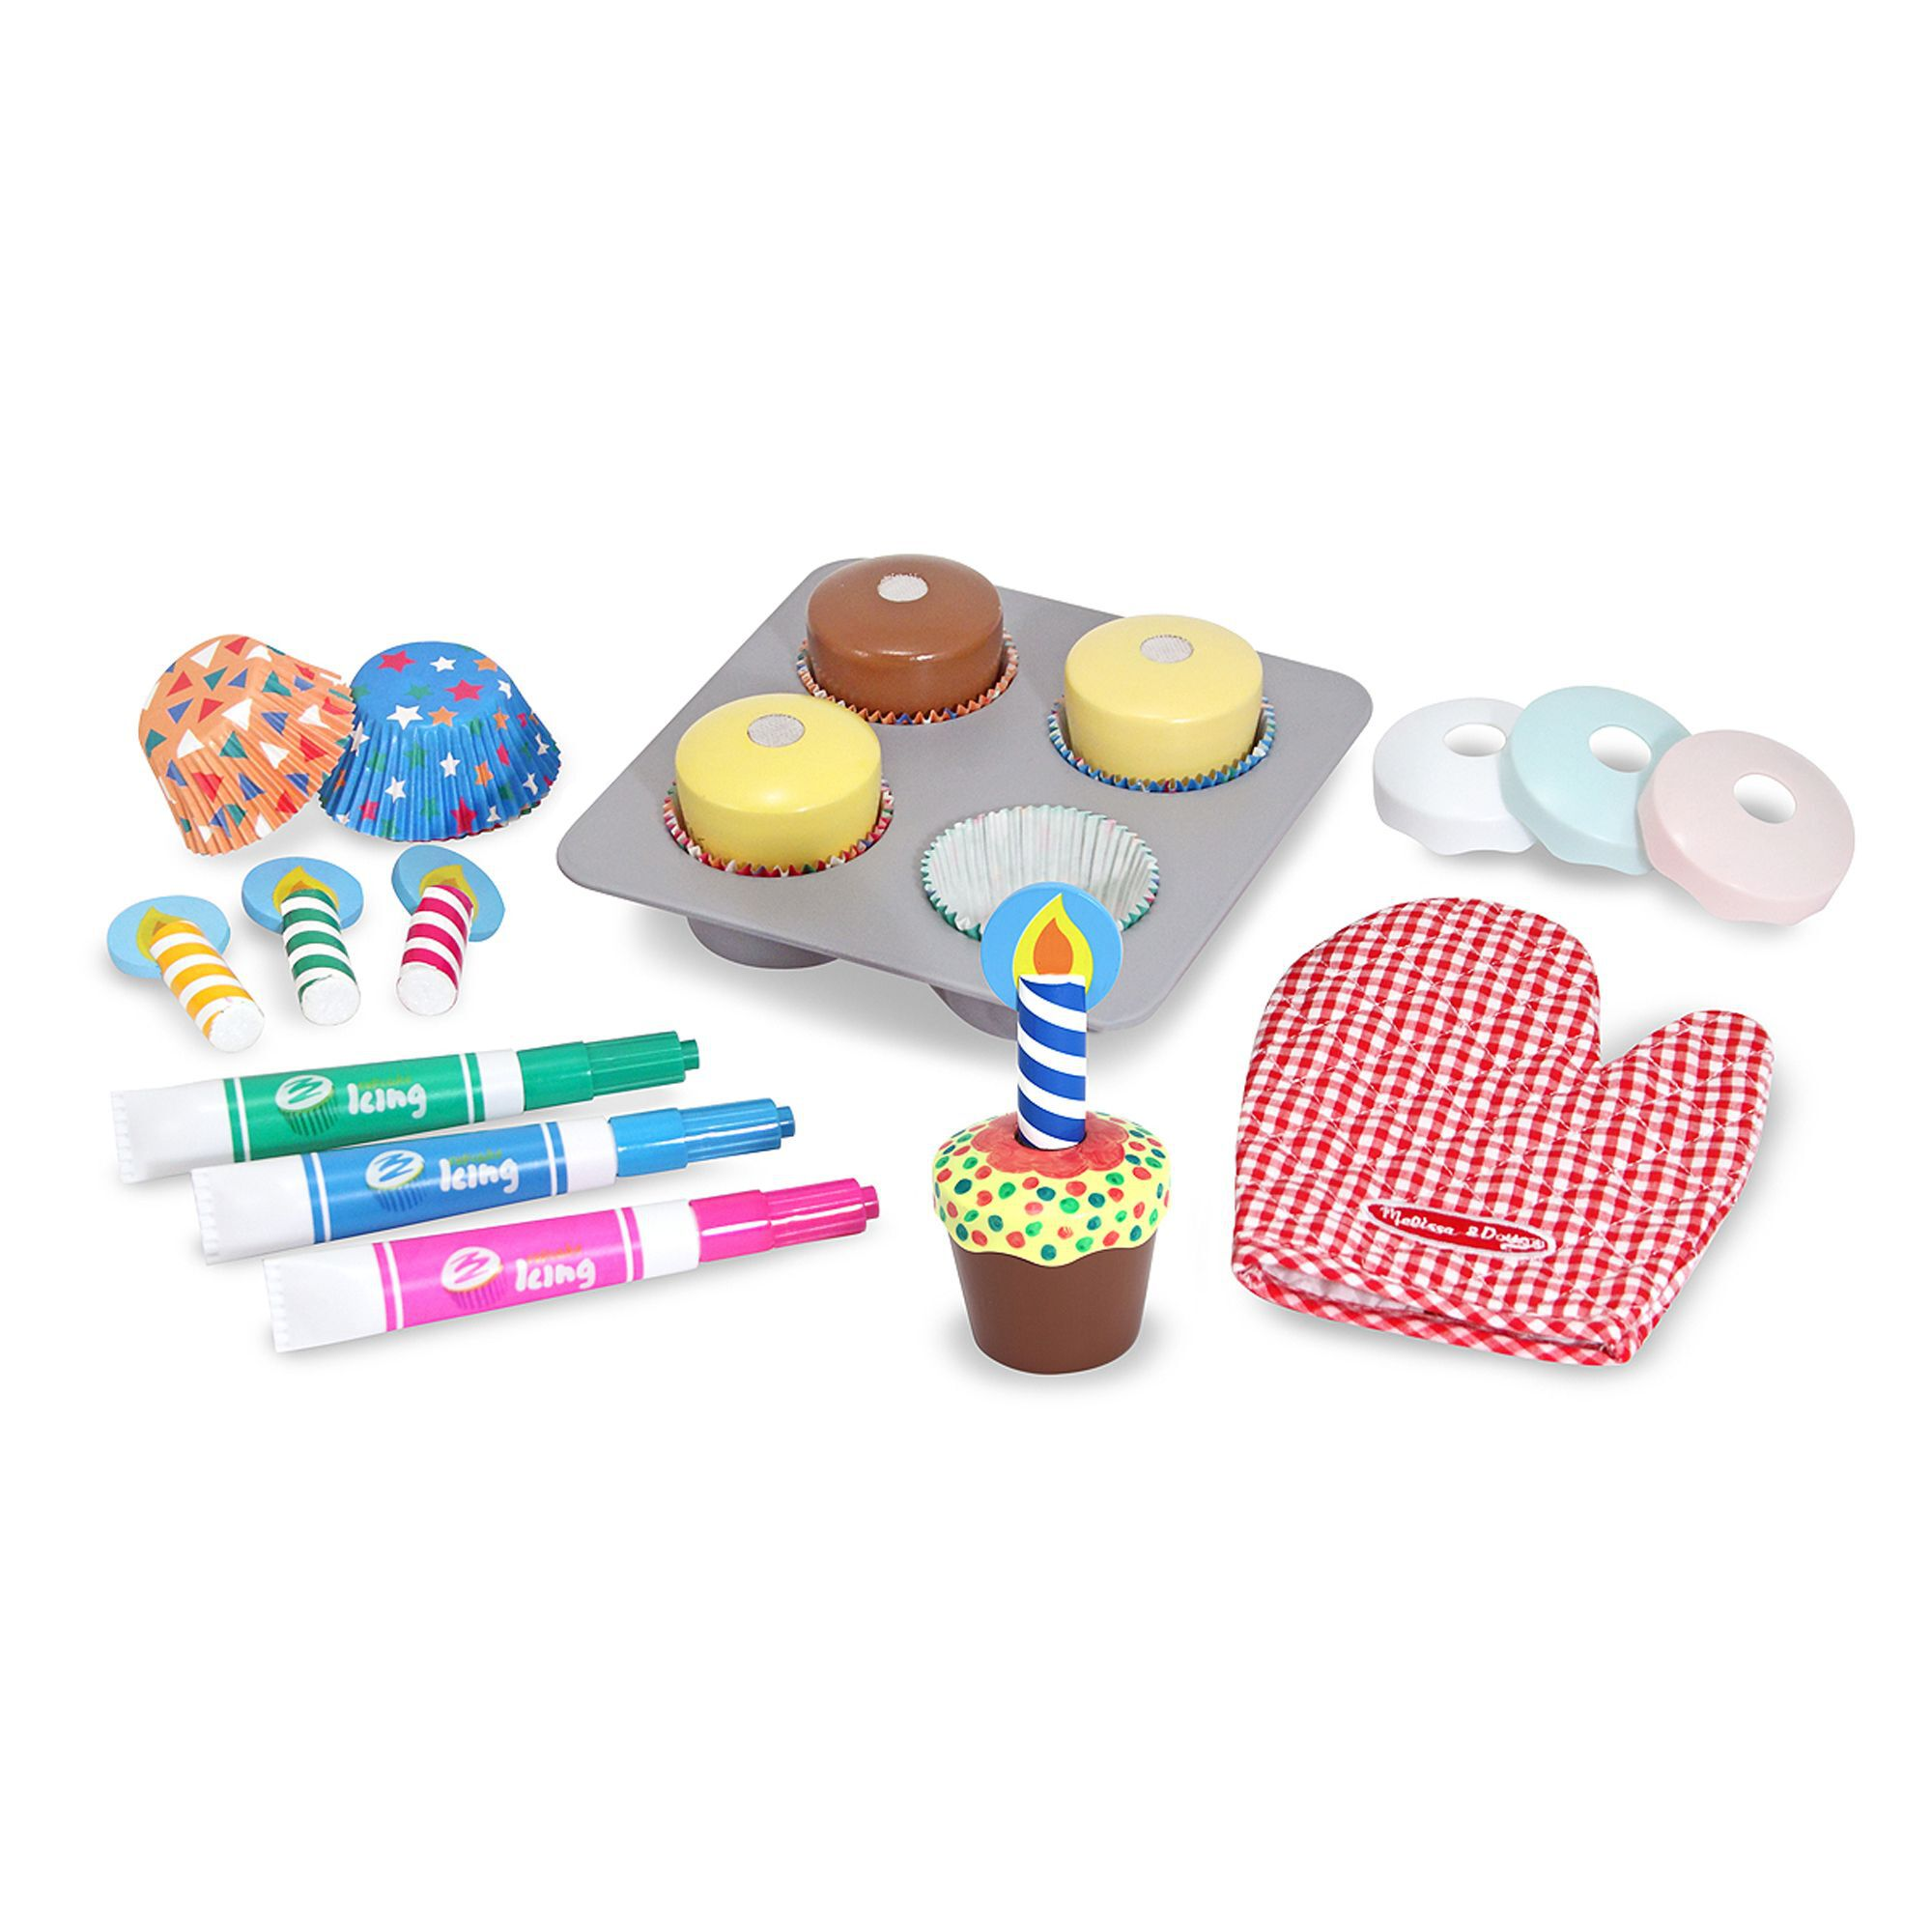 Children/'s Cupcake Fun shaped Note Pad for Kids The Bake Shop